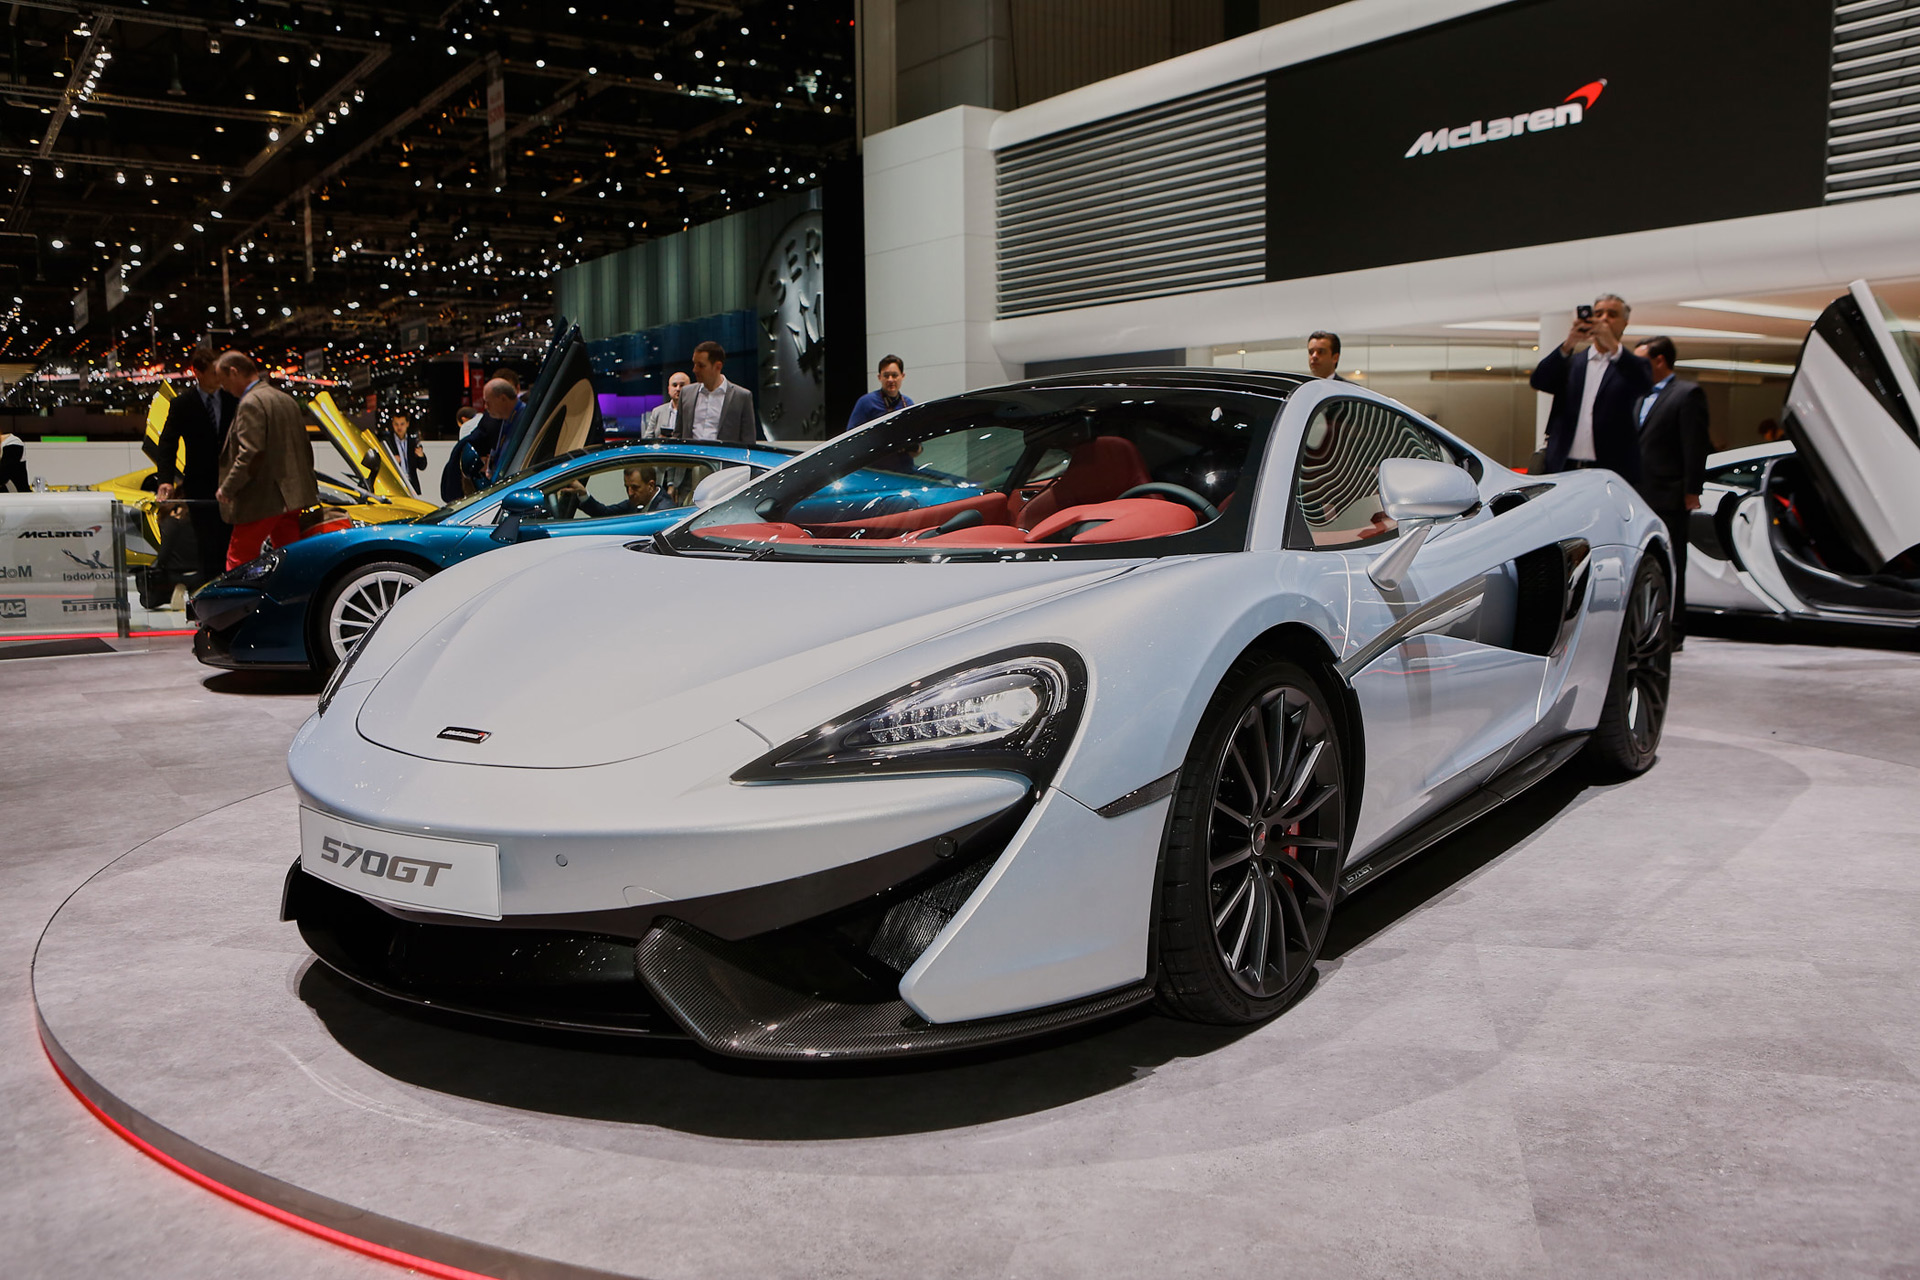 Mclaren S Most Practical Car Is The 570gt